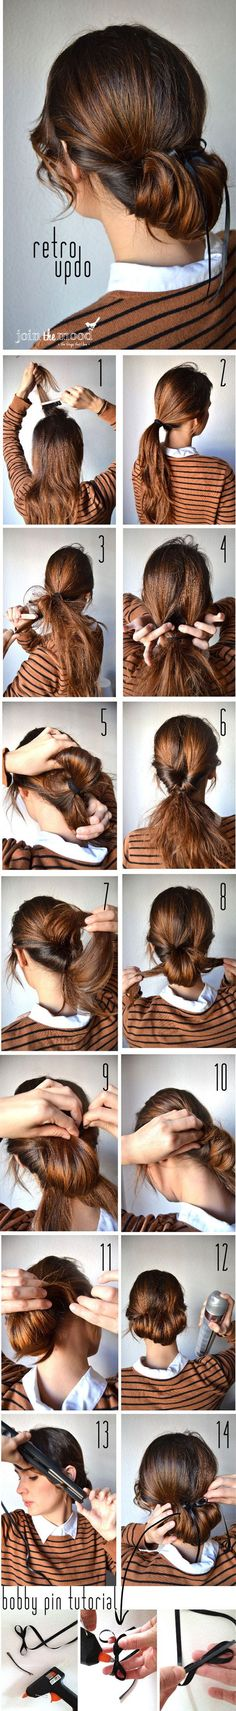 Retro Updo Tutorial: Step by Step Hairstyle for Long Hair Retro Updo Hairstyles, Updo Hairstyles Tutorials, Pretty Hairstyles, Hairstyle Ideas, Wedding Hairstyles, Quick Hairstyles, Step Hairstyle, Popular Haircuts, Beauty Tutorials